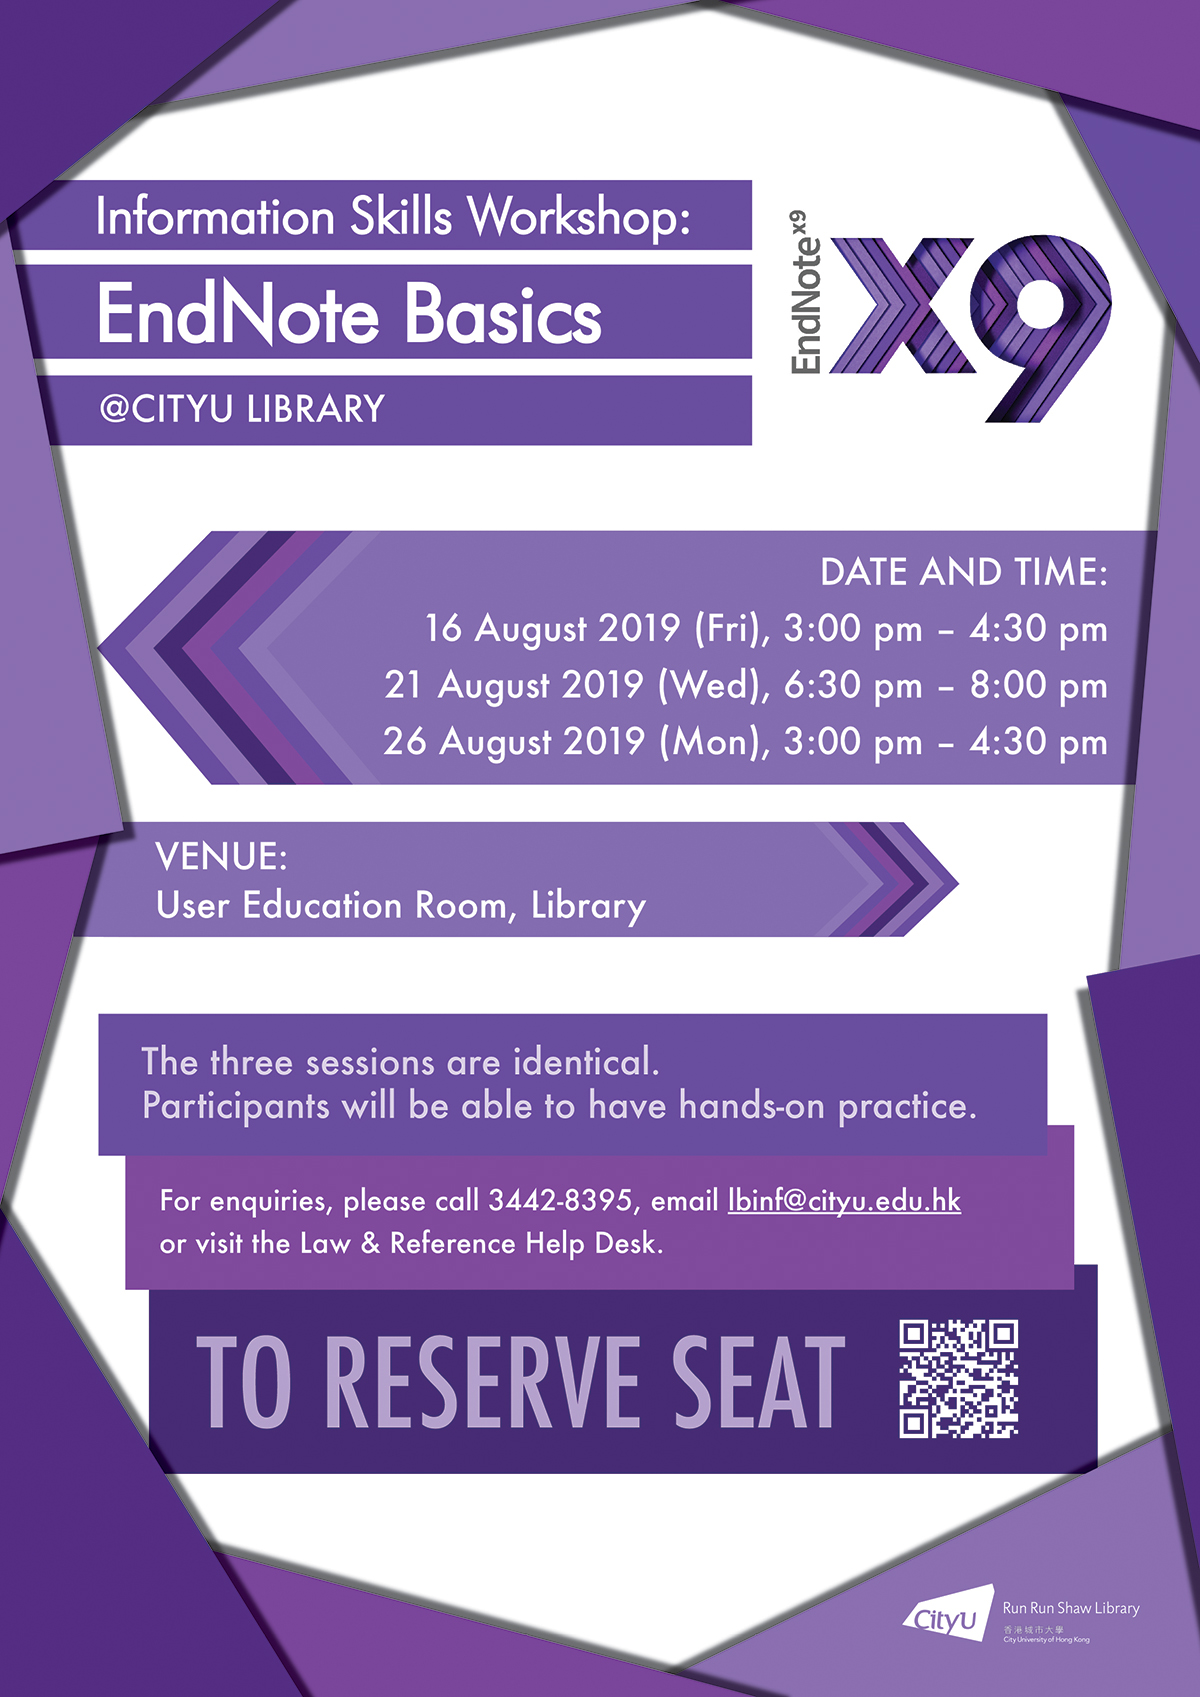 Information Skills Workshop: EndNote Basics @CityU Library; Date and time: 16 August 2019 (Fri), 3:00 pm - 4:30 pm; 21 August 2019 (Wed), 6:30 pm - 8:00 pm; 26 August 2019 (Mon), 3:00 pm - 4:30 pm; Venue: User Education Room, Library; The three sessions are identical. Participants will be able to have hands-on practice. For enquiries, please call 3442-8395, email lbinf@cityu.edu.hk or visit the Law & Reference Help Desk.